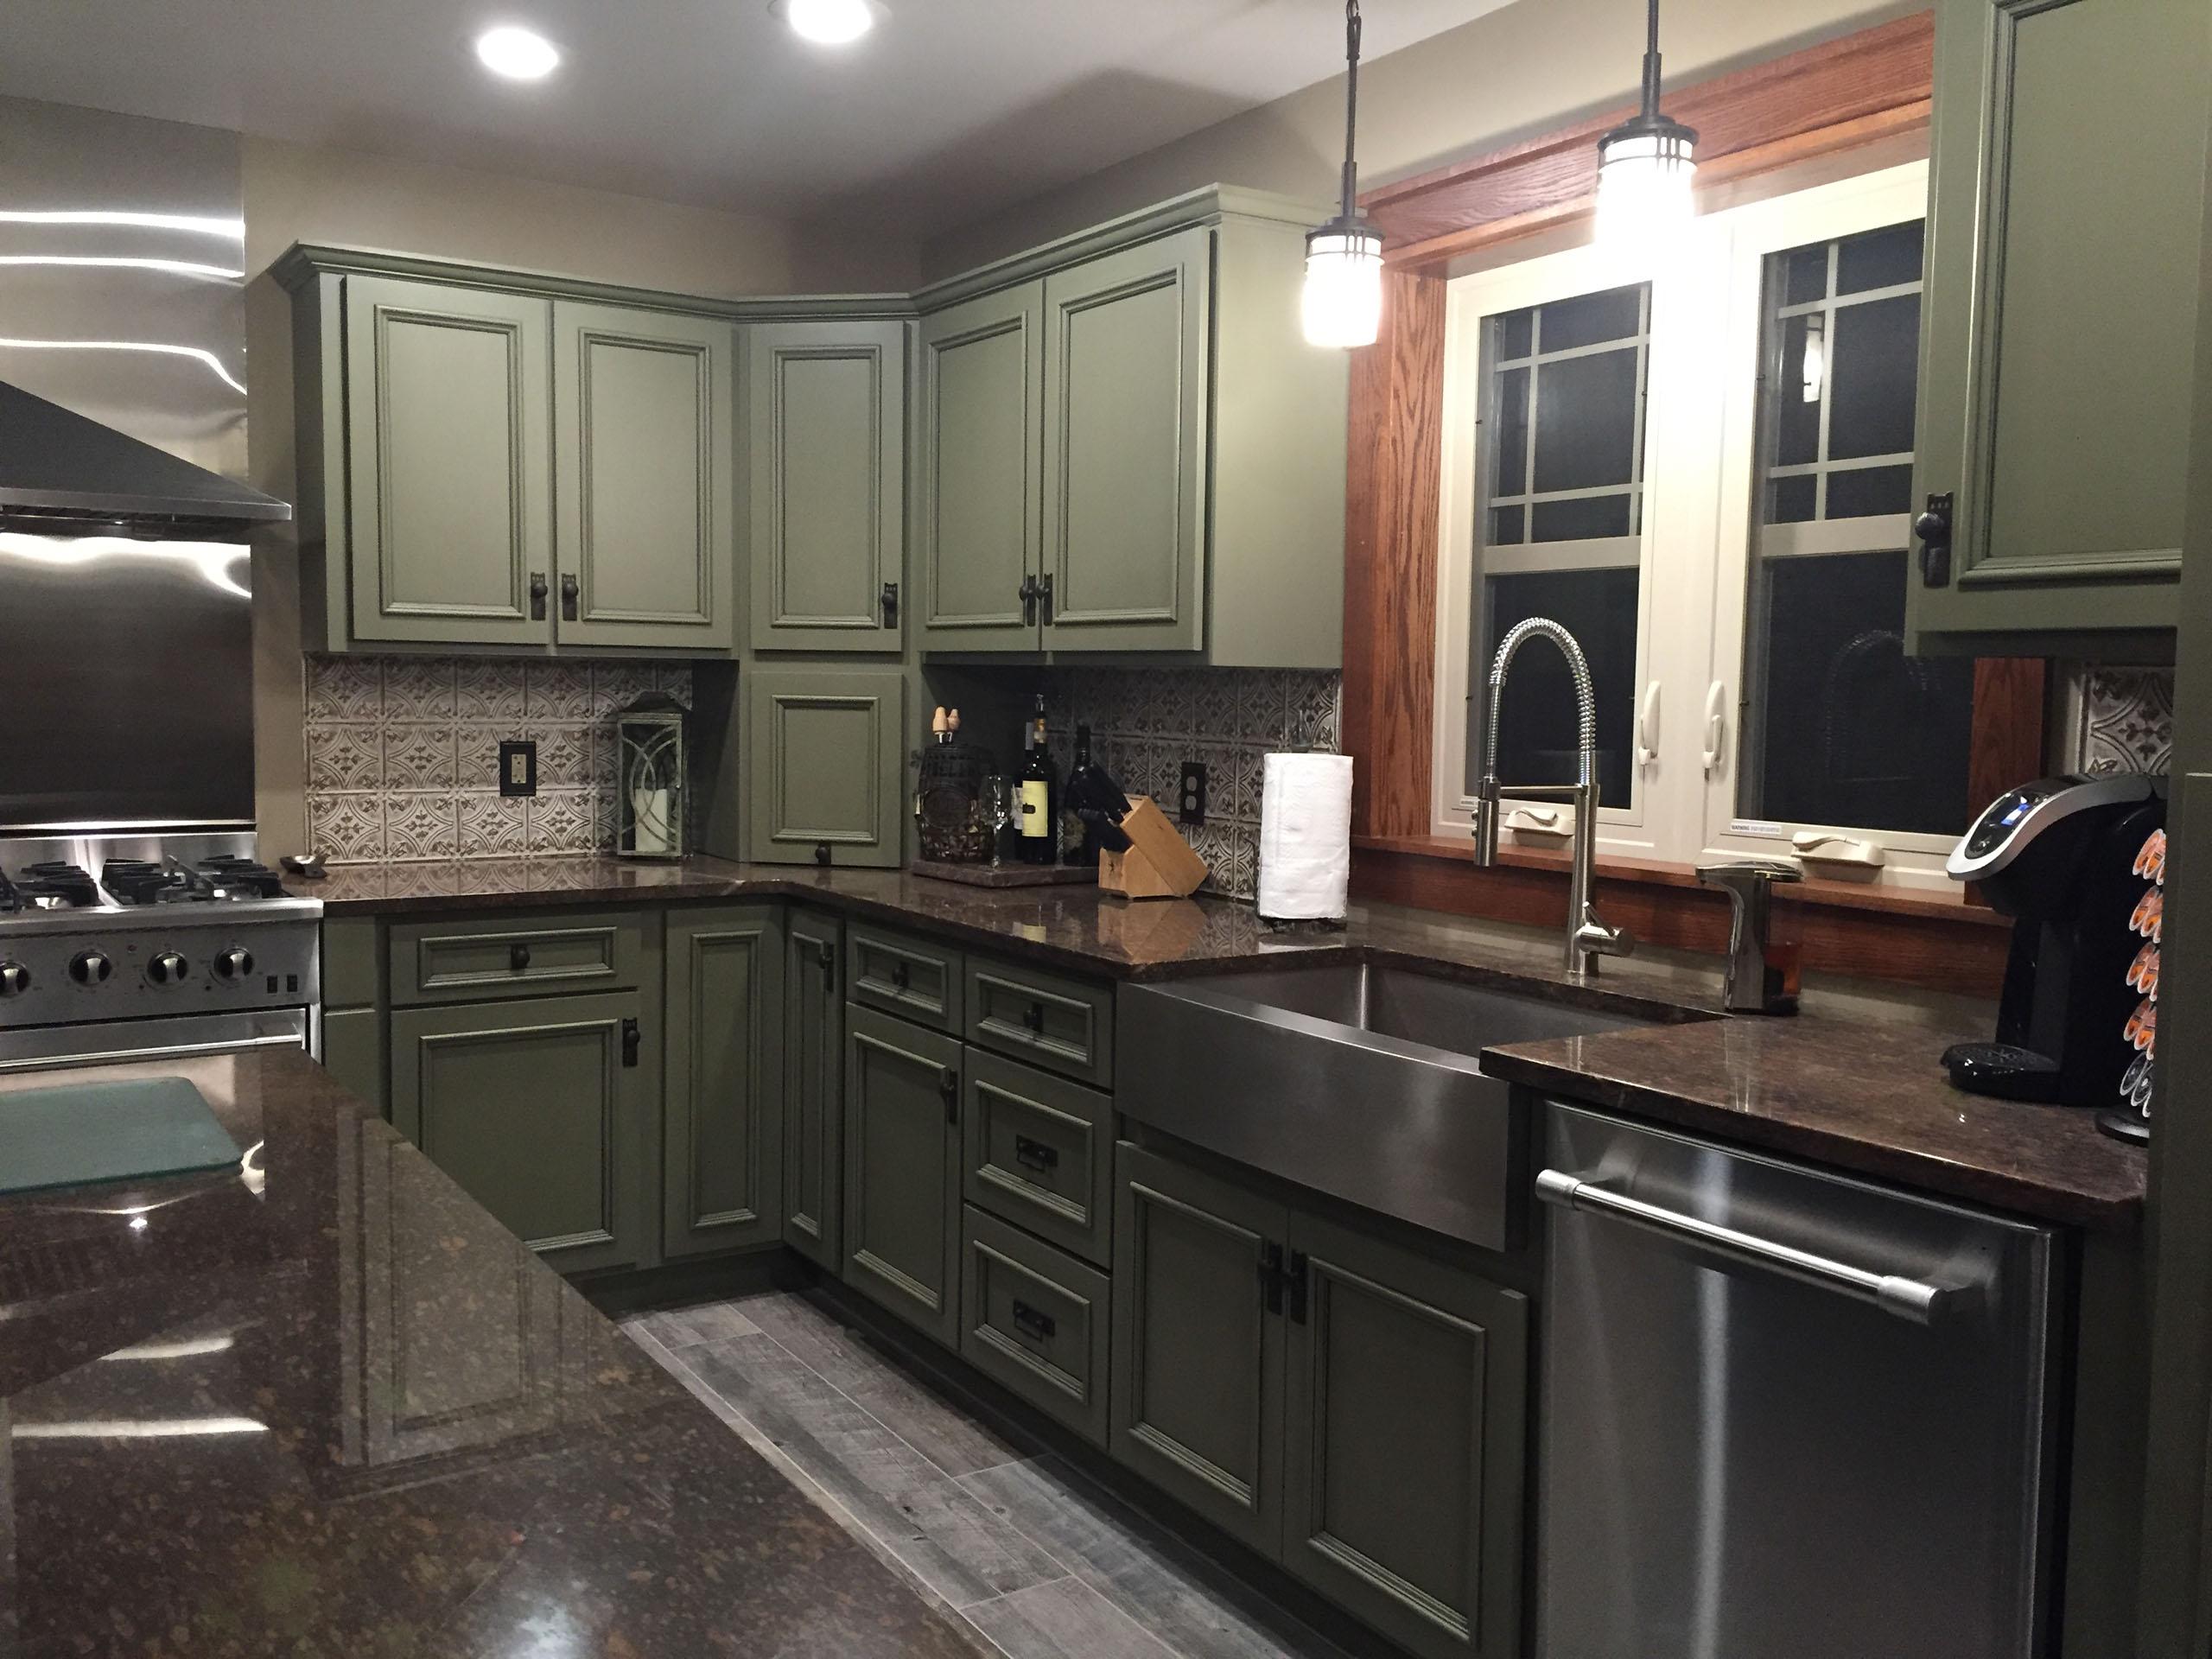 Quality custom cabinets furniture and woodwork - Klines Woodworking Custom Cabinets Services The Central Pennsylvania Region Delivering Unparalleled Professional Design Skilled Installation